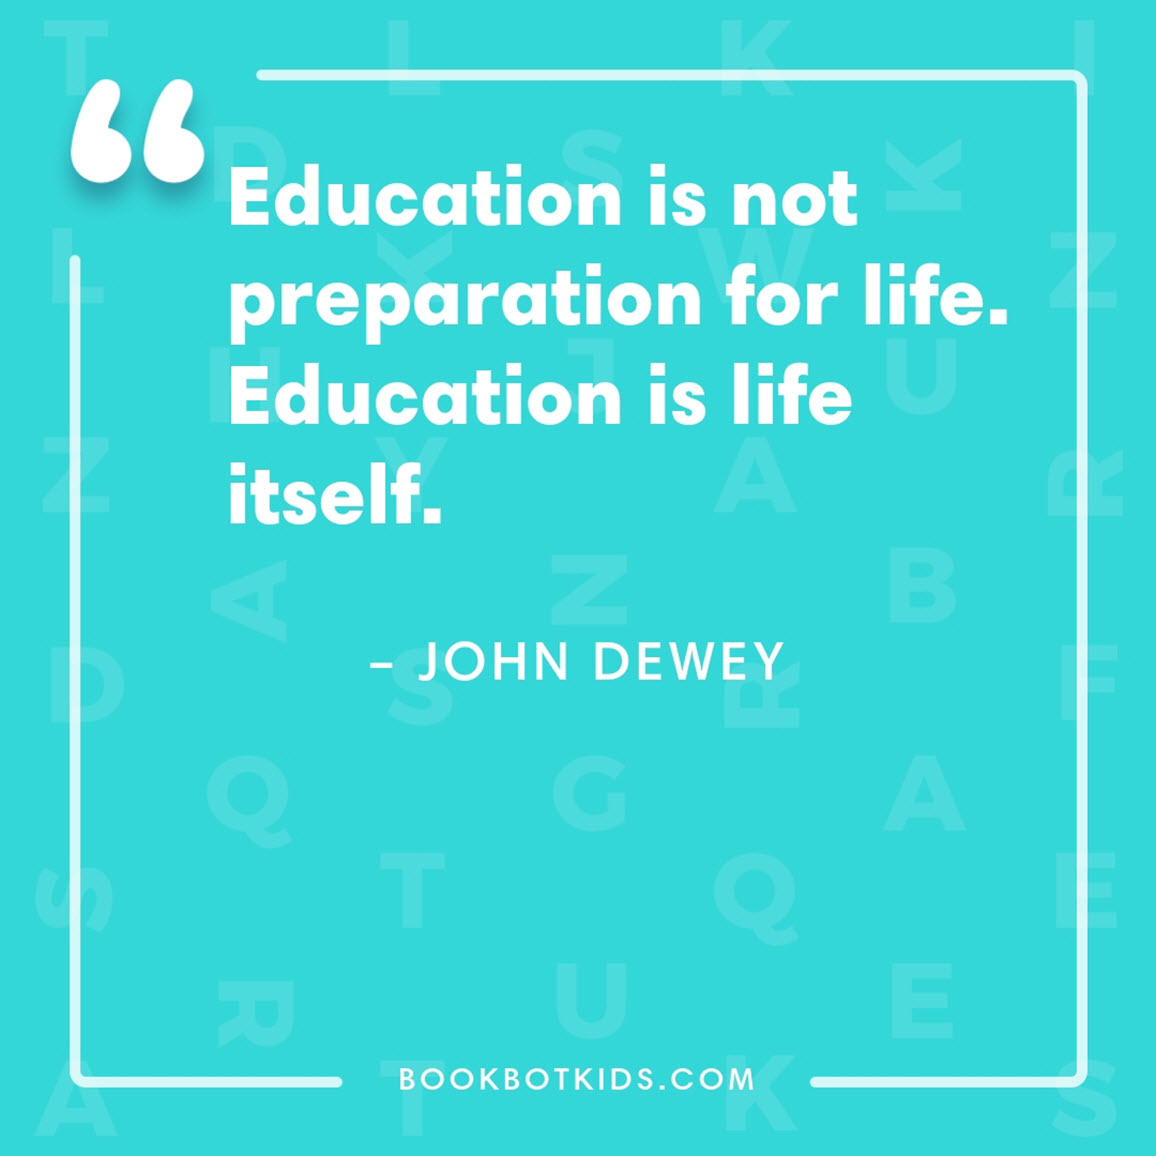 Education is not preparation for life. Education is life itself. – John Dewey